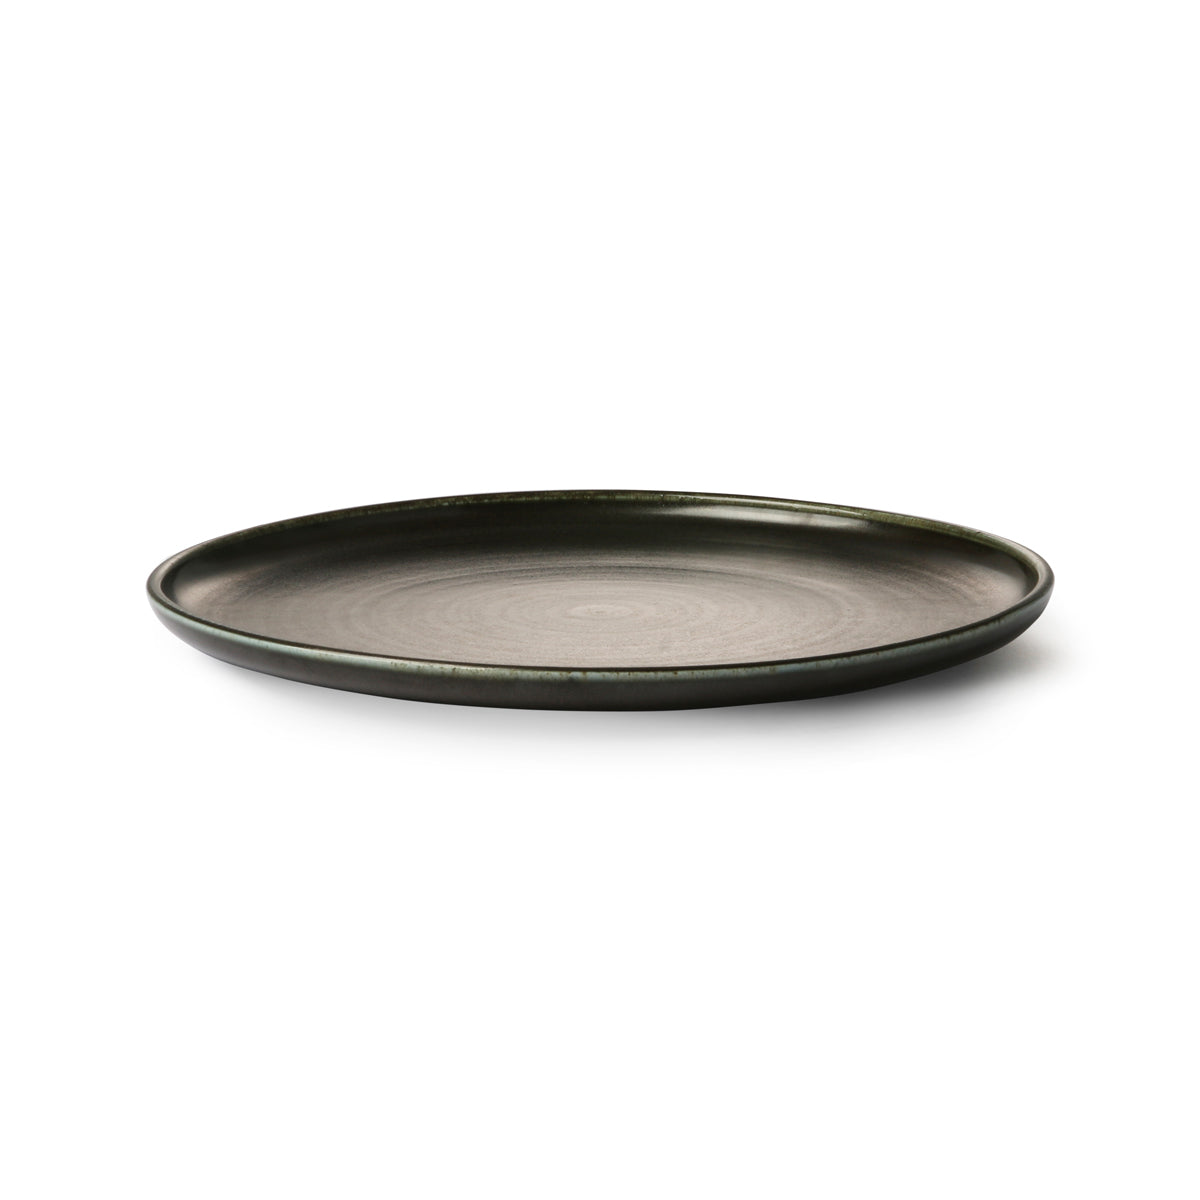 HK Living home chef ceramics: dinner plate rustic black